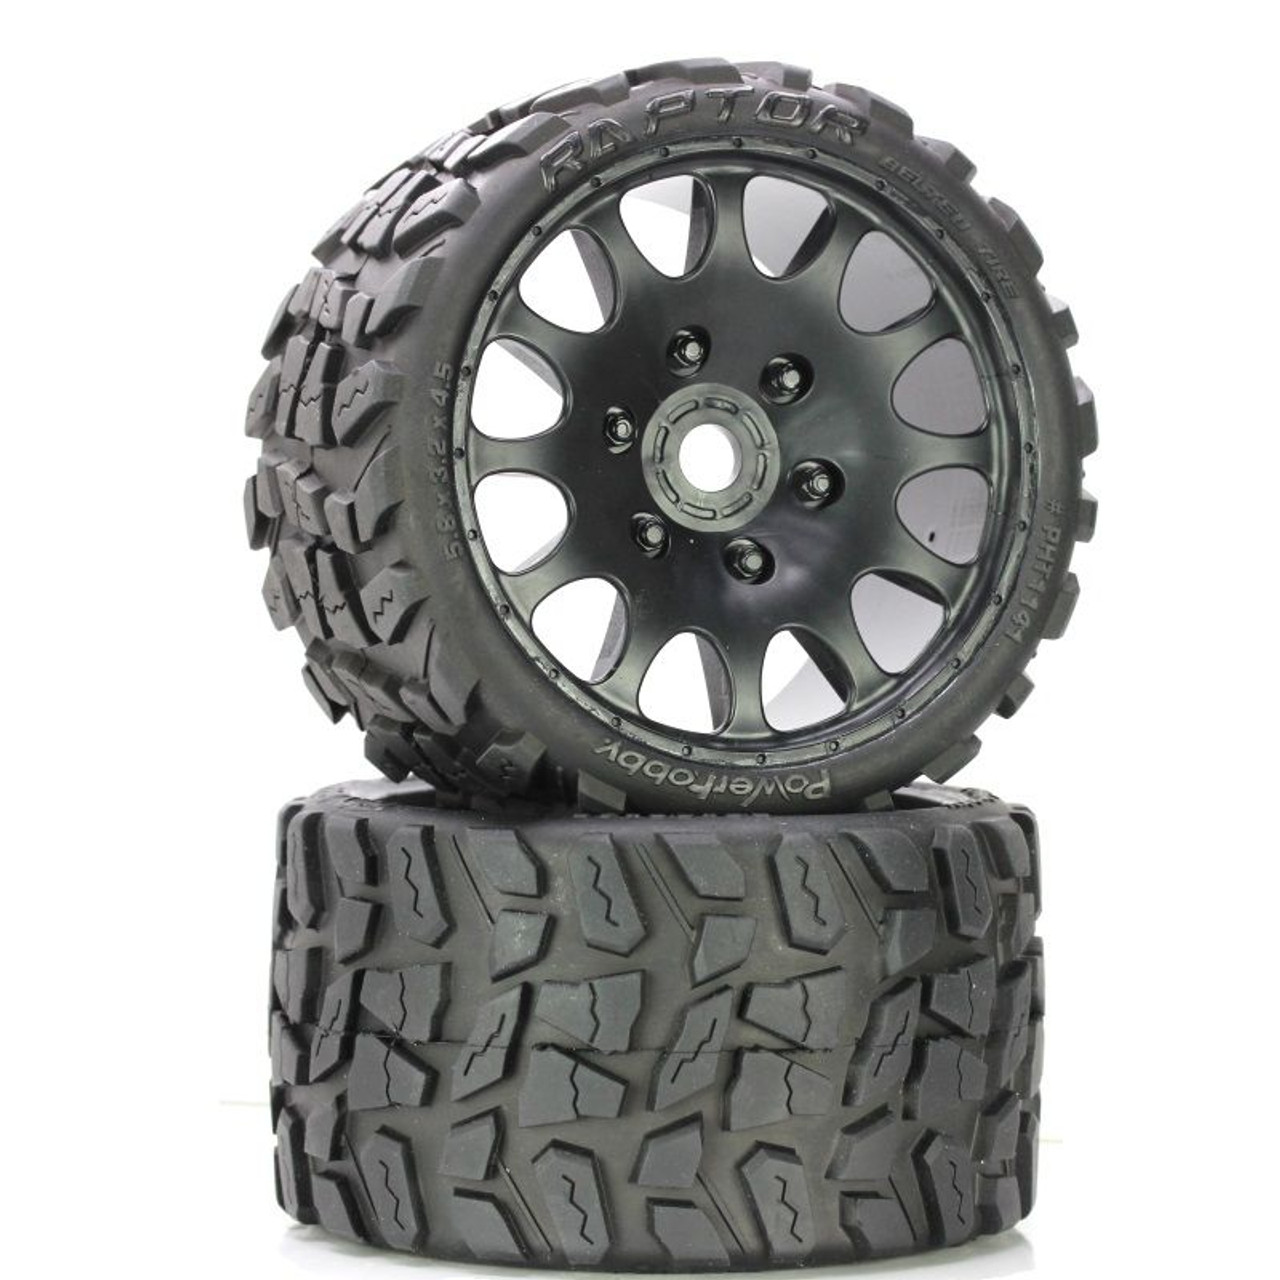 Power Hobby 1141s Raptor Belted Monster Truck Wheels Tires Pr Pre Mounted Sport Medium Compound 17mm Hex Phbpht1141s